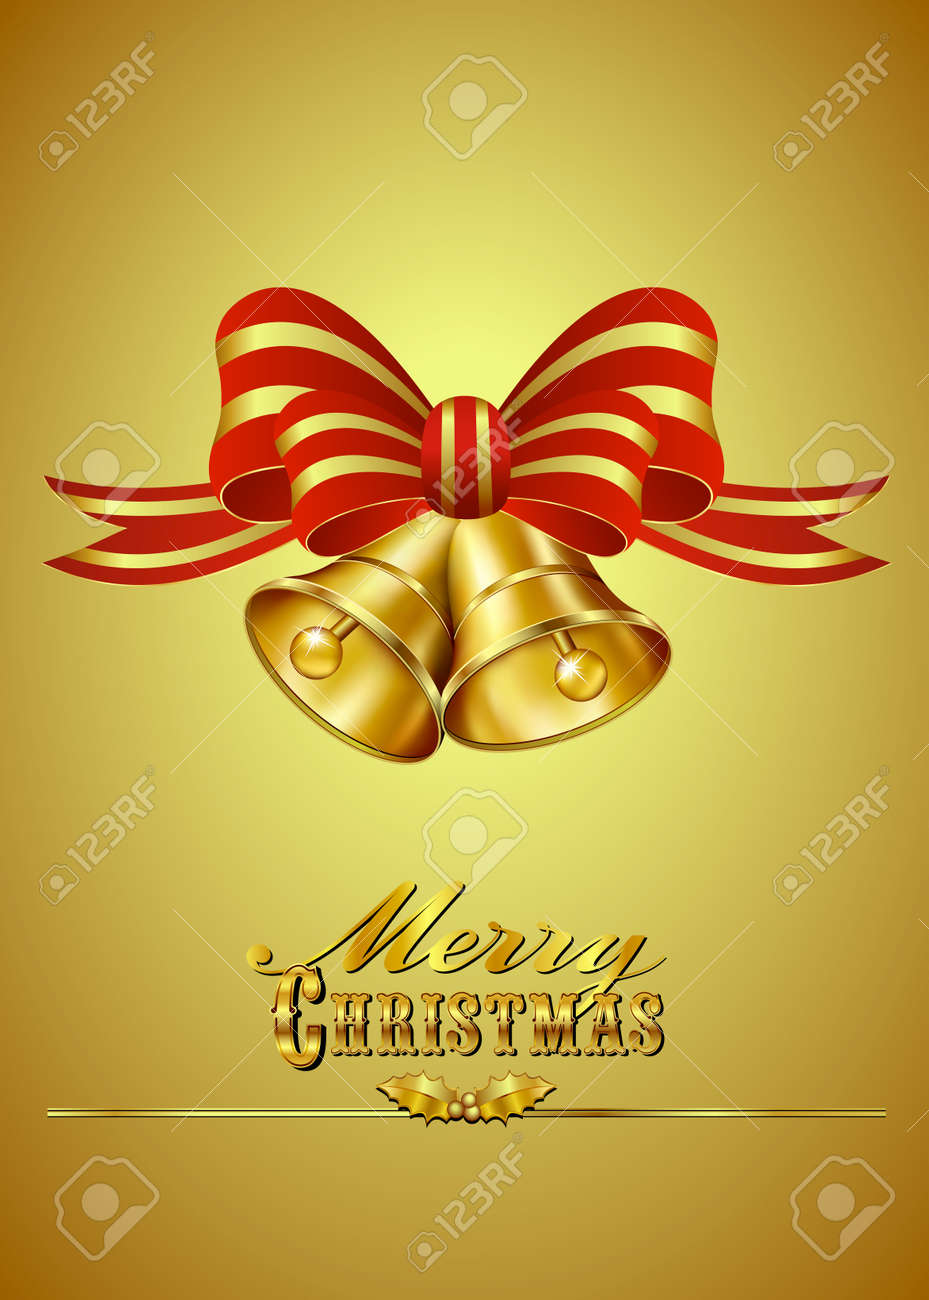 Christmas Card with Bells on Gold background - 22709614